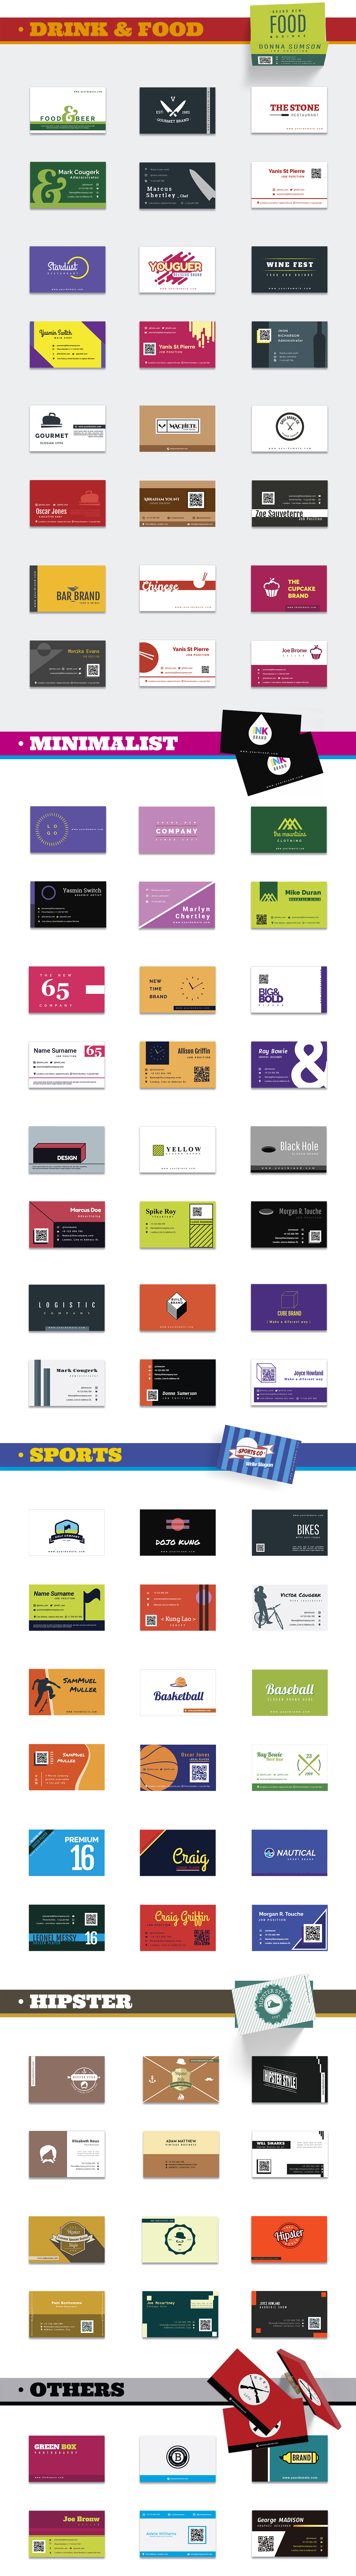 1000 business card templates pack designshock shockfamily business card templates branding identity packs vintage business cards reheart Gallery